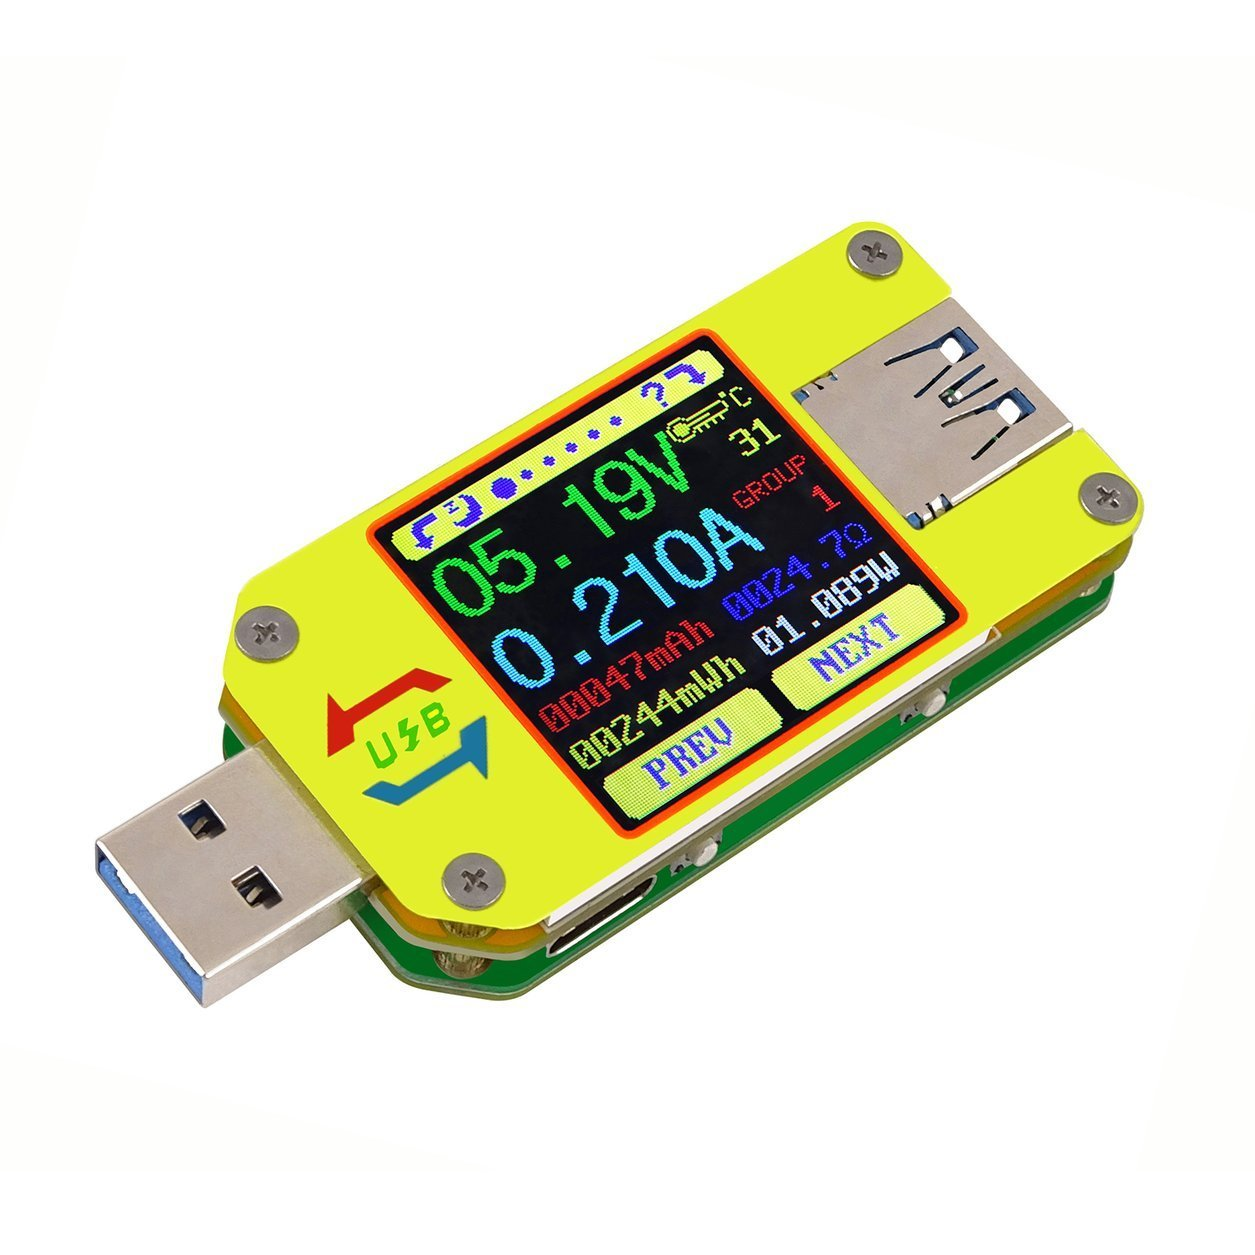 RD UM34C para APP USB 3.0 LCD Display Voltmeter Ammeter Cable Resistance Tester (Color: Colorido) Dailyinshop